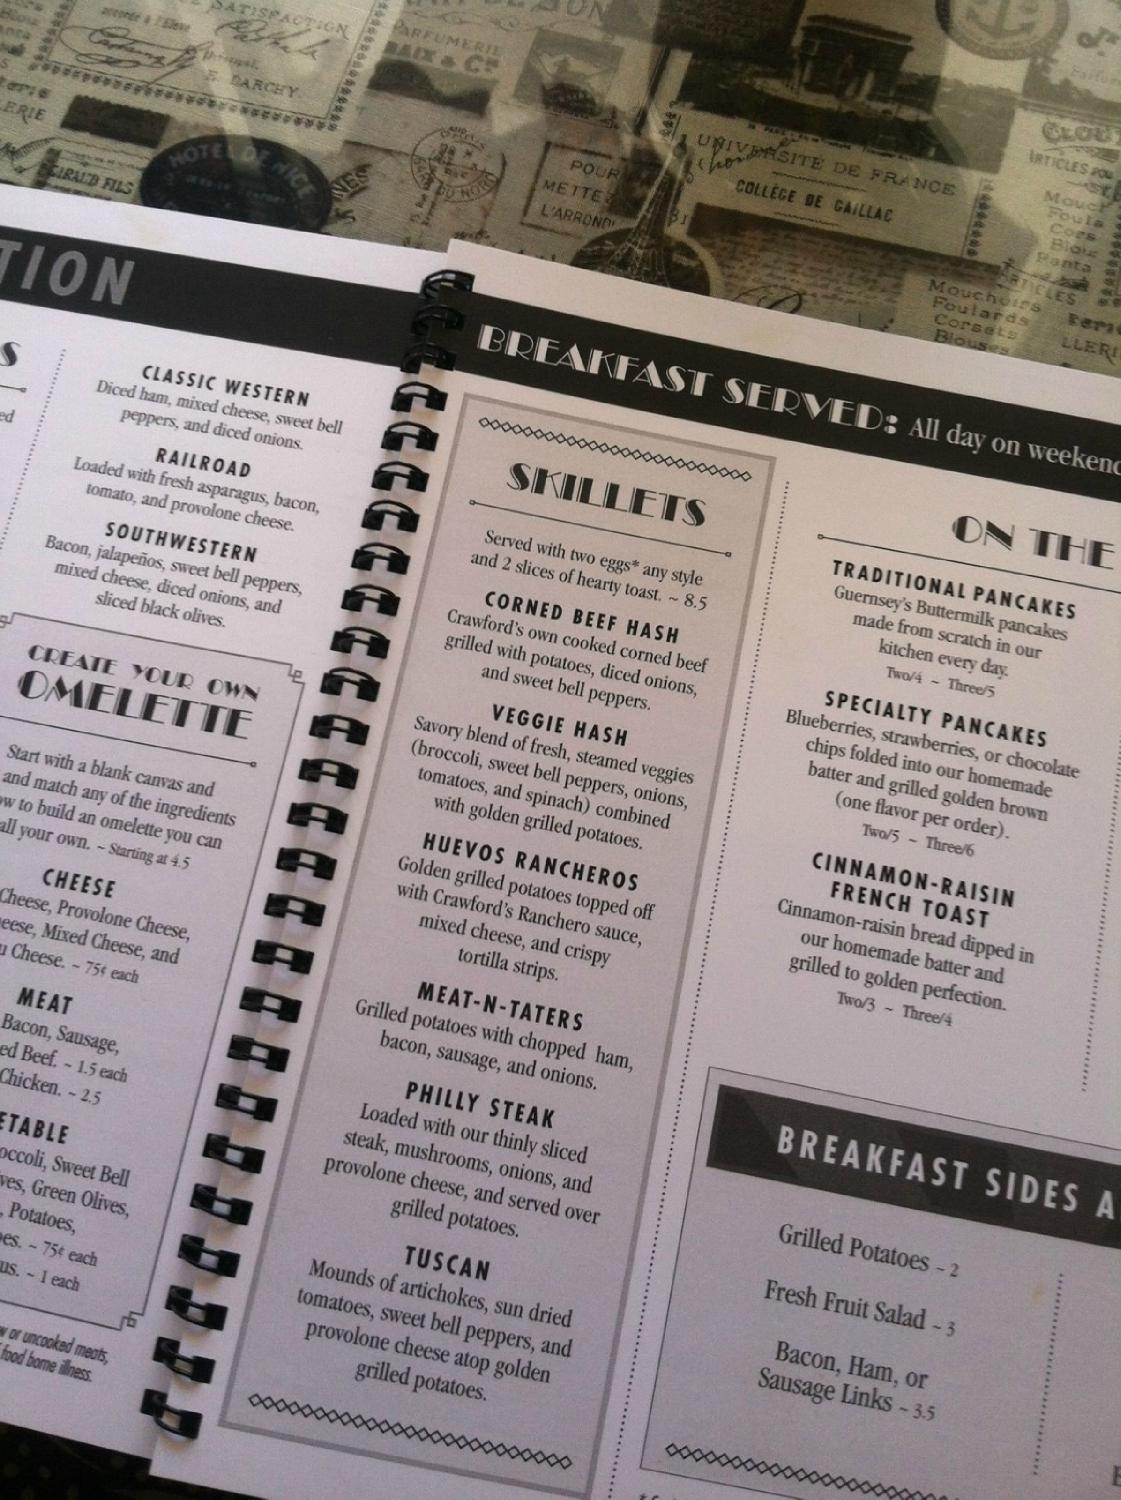 New menu, now over-priced